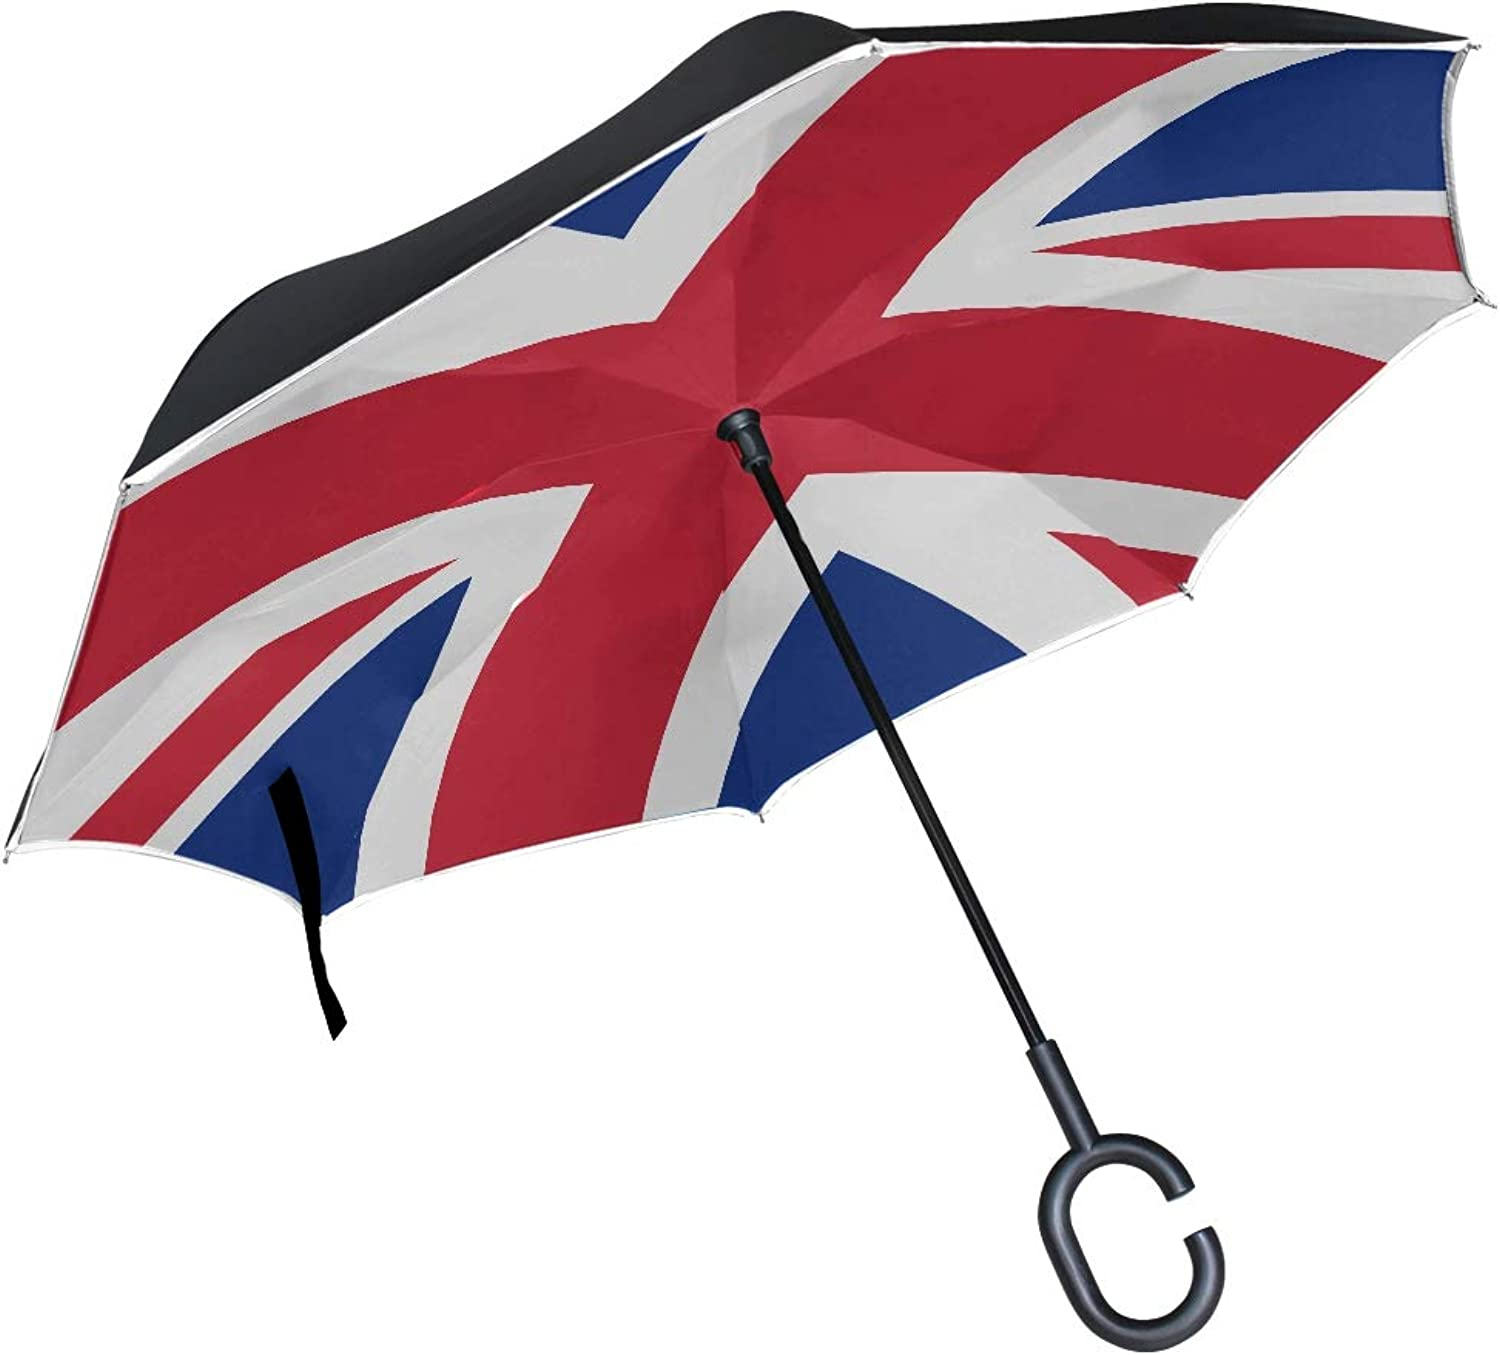 Double Layer Ingreened British Flag Pictures UK Flag Pictures Union Jack Umbrellas Reverse Folding Umbrella Windproof Uv Predection Big Straight Umbrella for Car Rain Outdoor with CShaped Handle